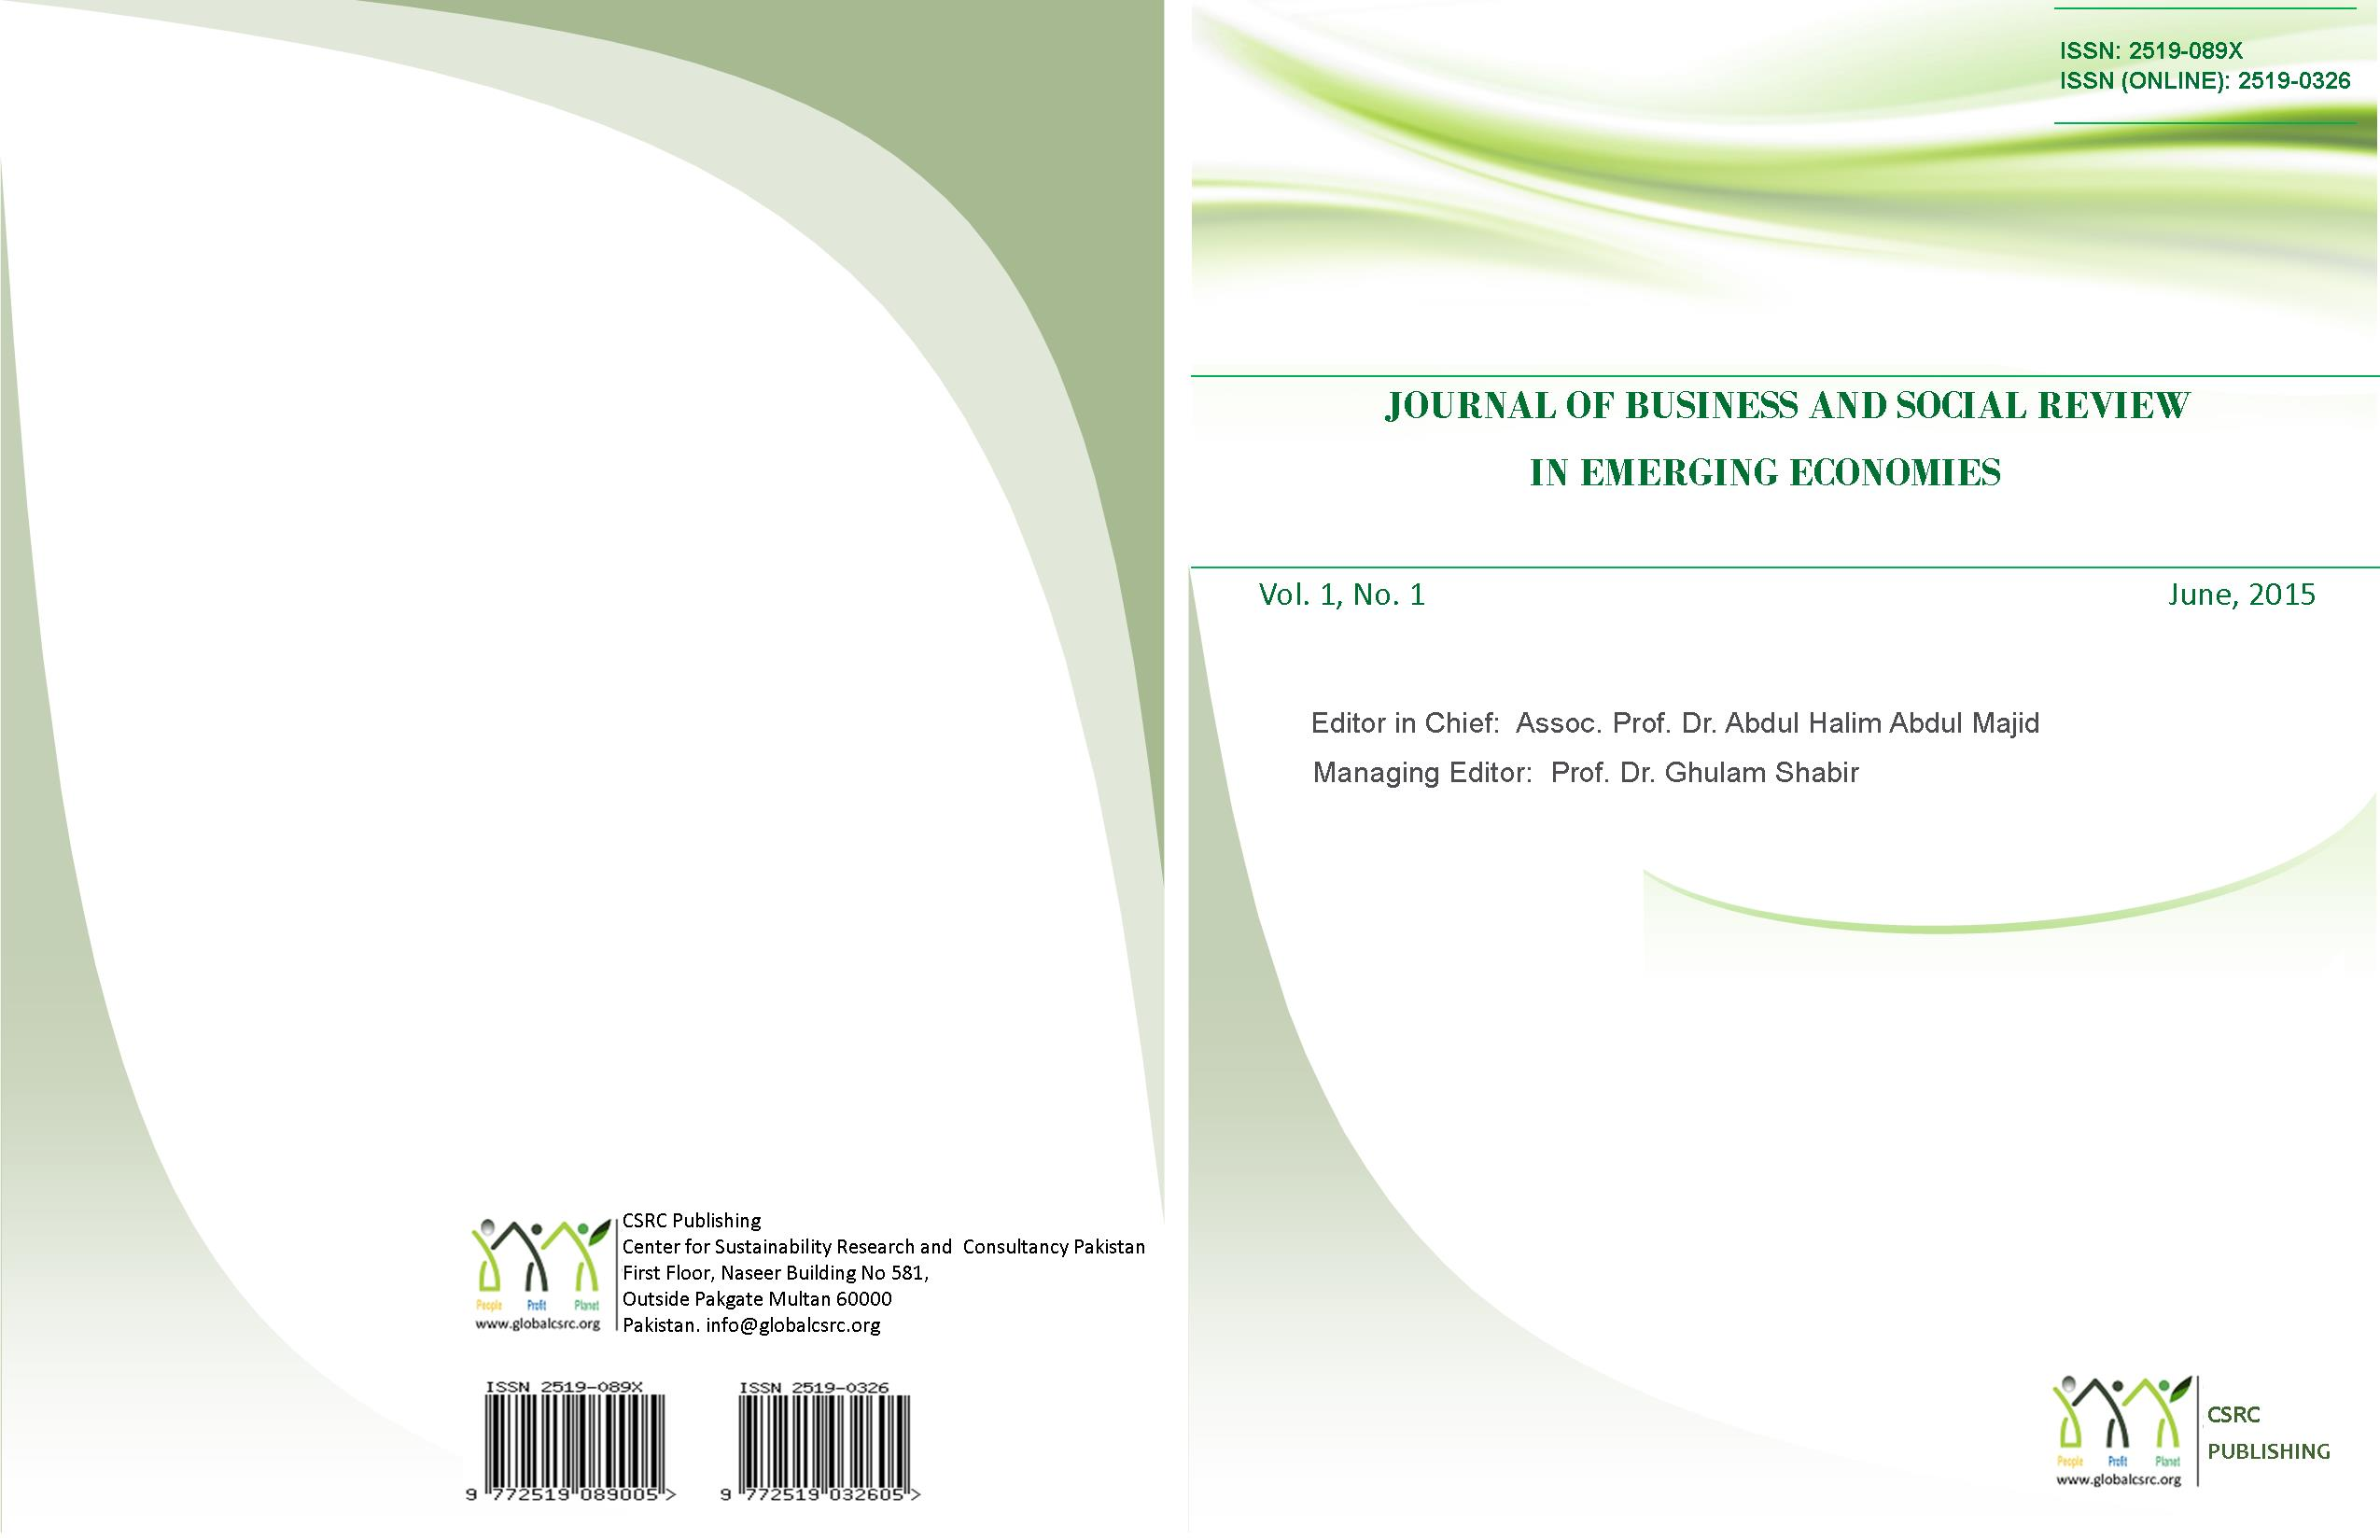 Journal of Business and Social Review in Emerging Economies, Vol 1, No. 1, June 2015